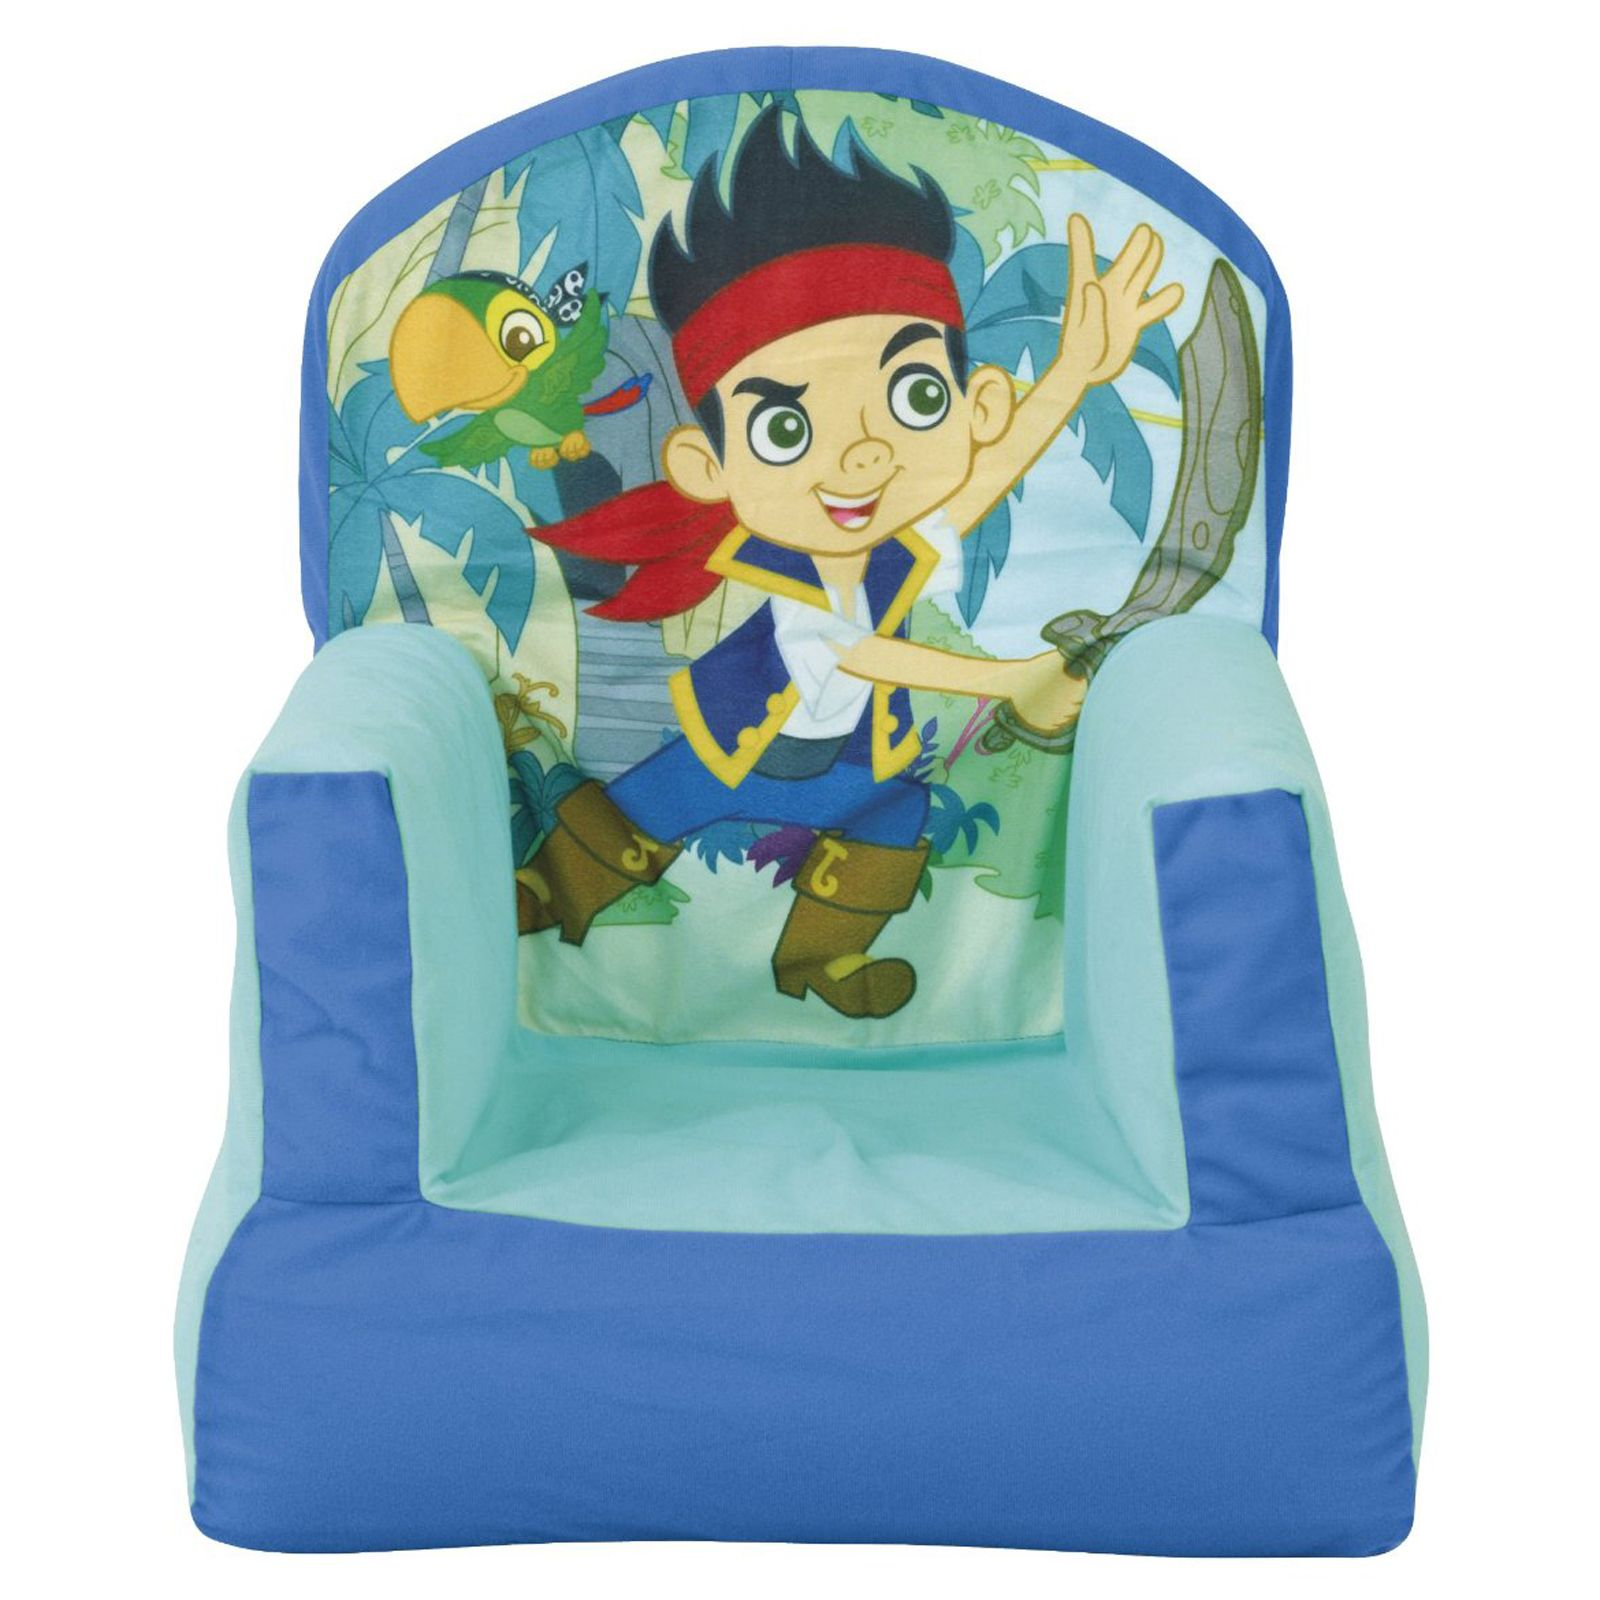 kids character chairs antique upholstered rocking chair official disney and childrens cosy